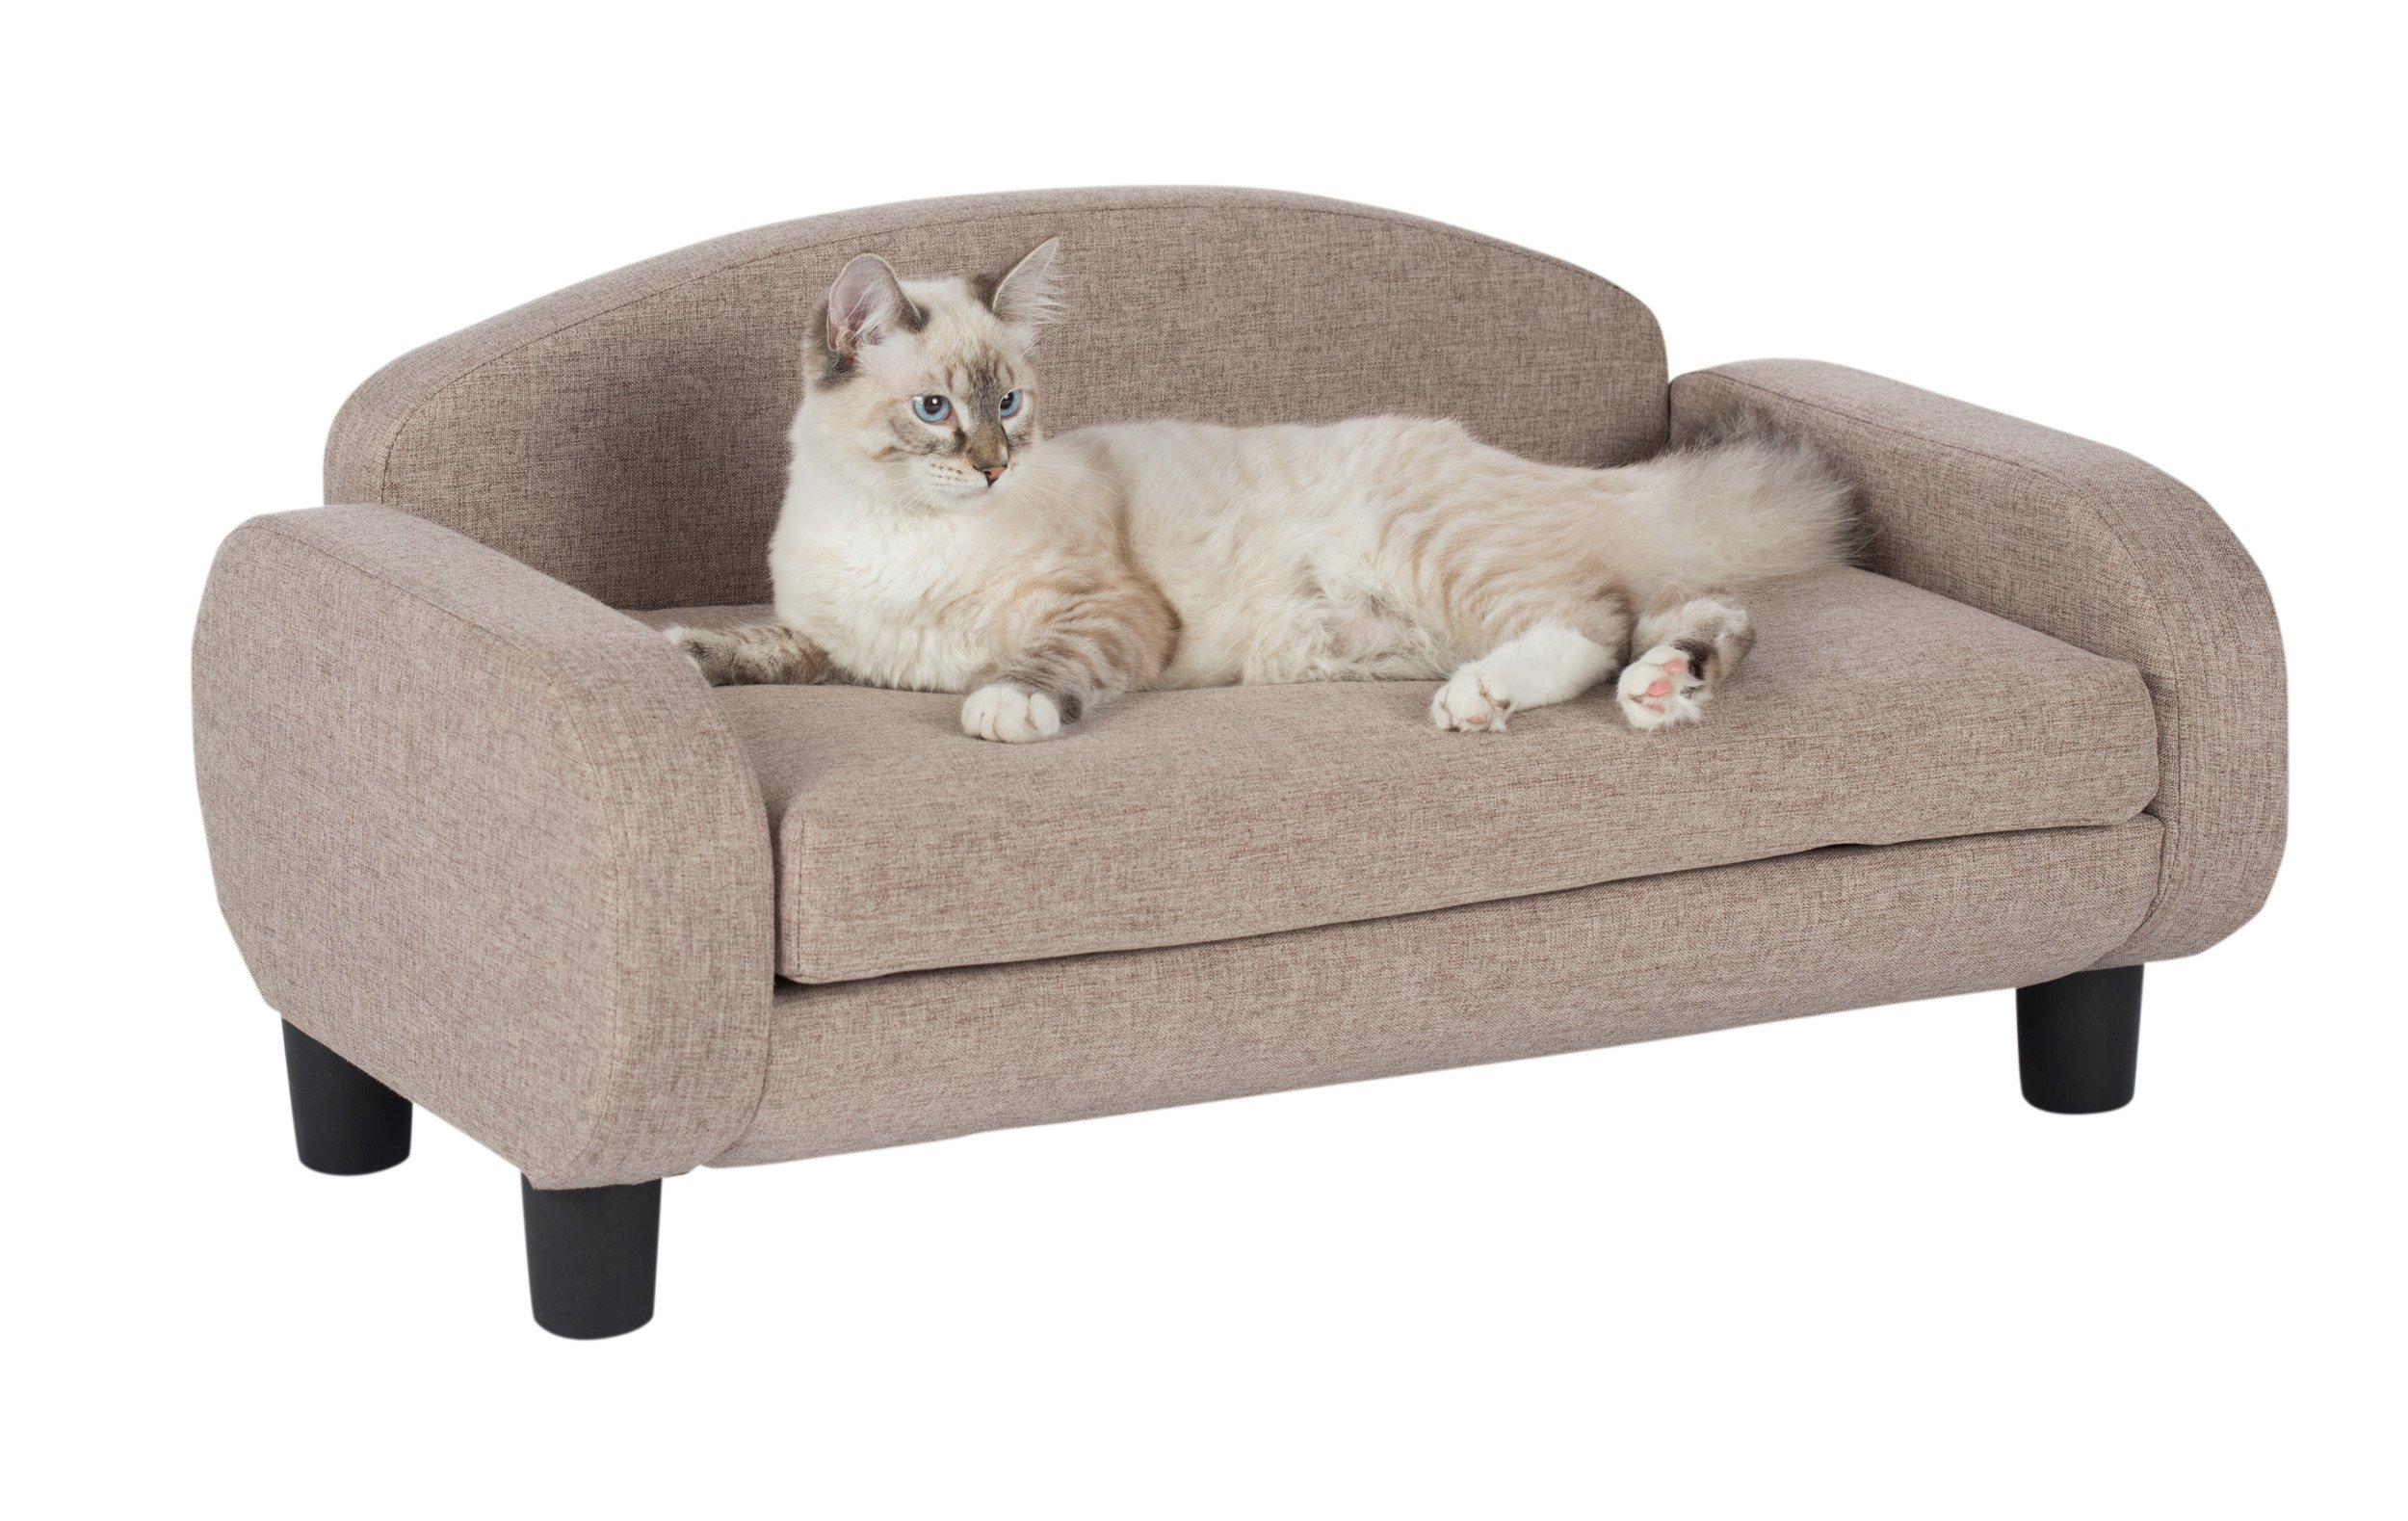 Paws & Purrs Pet Upholstered Sofa Bed, Sand